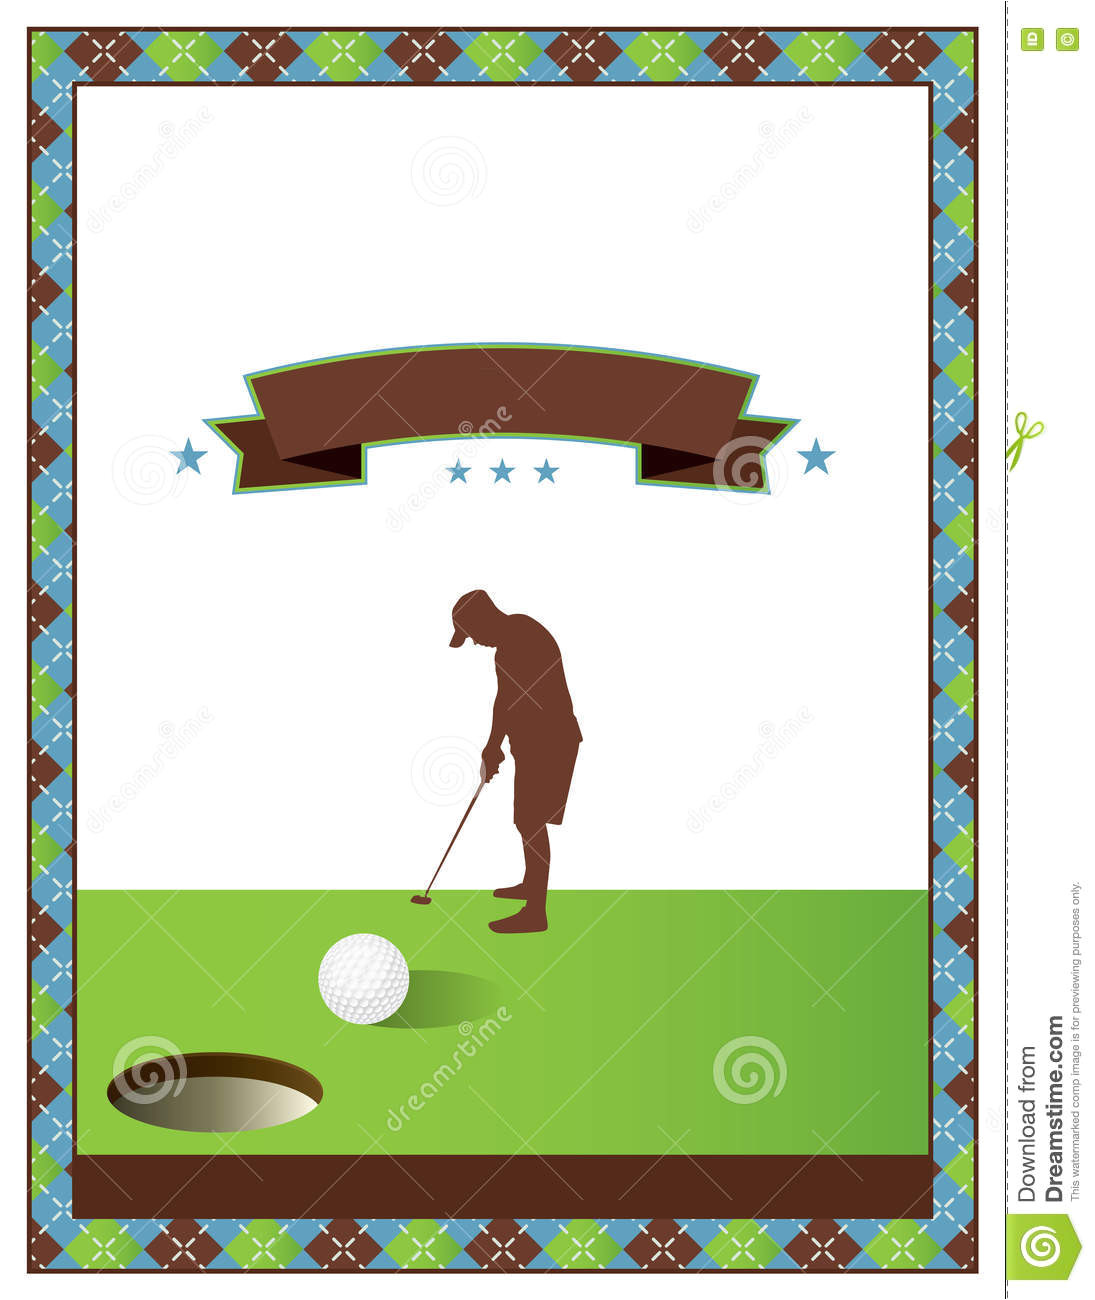 stock illustration blank golf tournament flyer template scramble invitation vector eps available image71697553